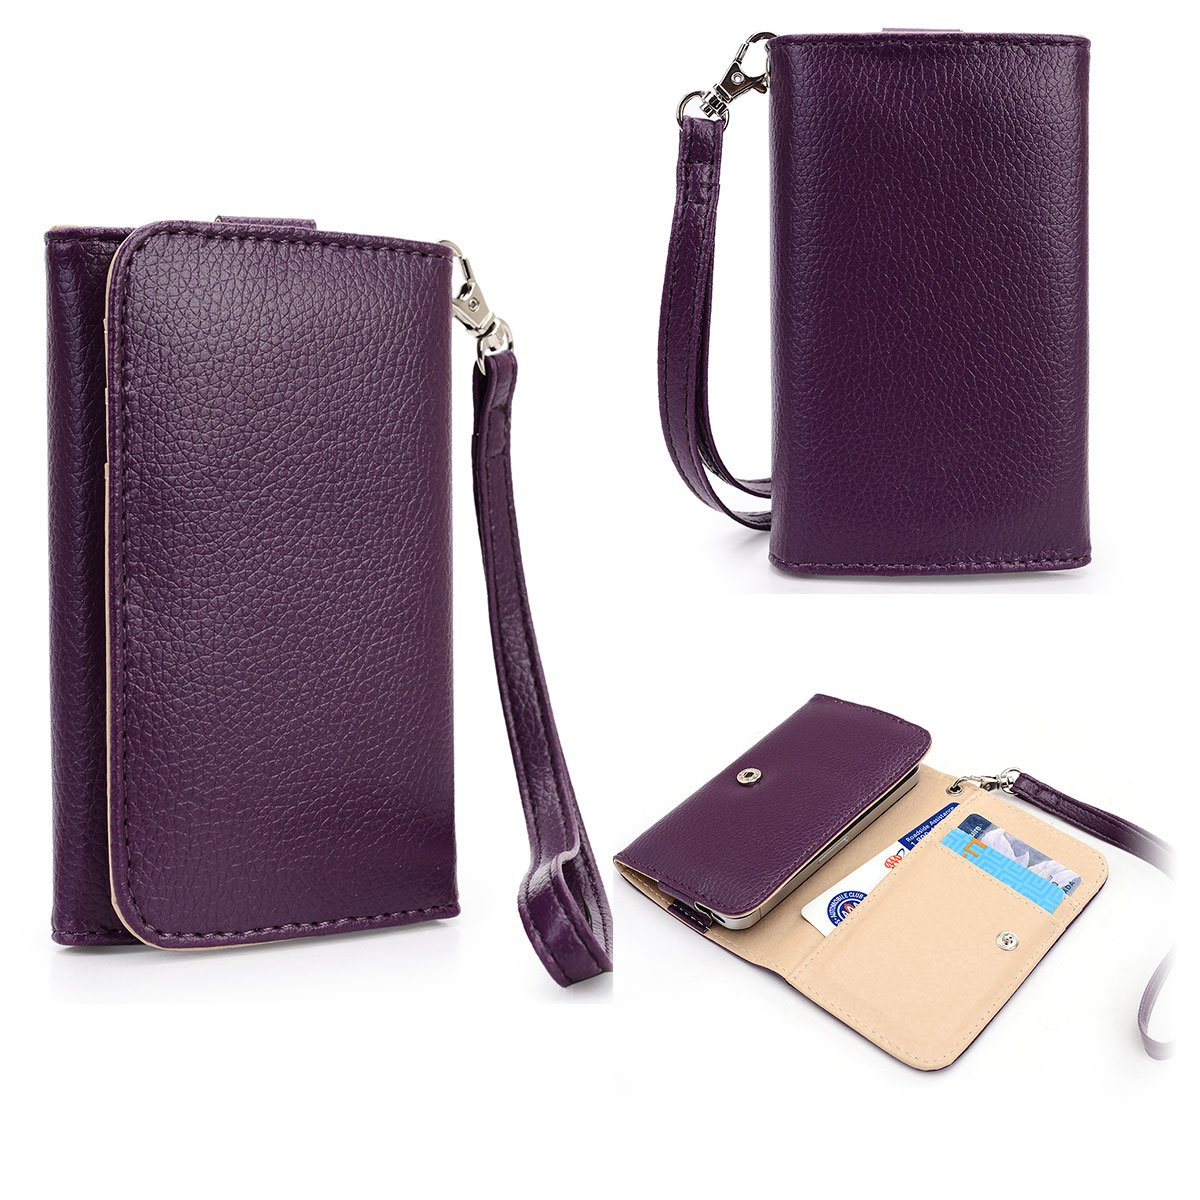 Purple EXXIST Universal Smartphone Wallet Wristlet with Card Holders fits Samsung Galaxy Young 2